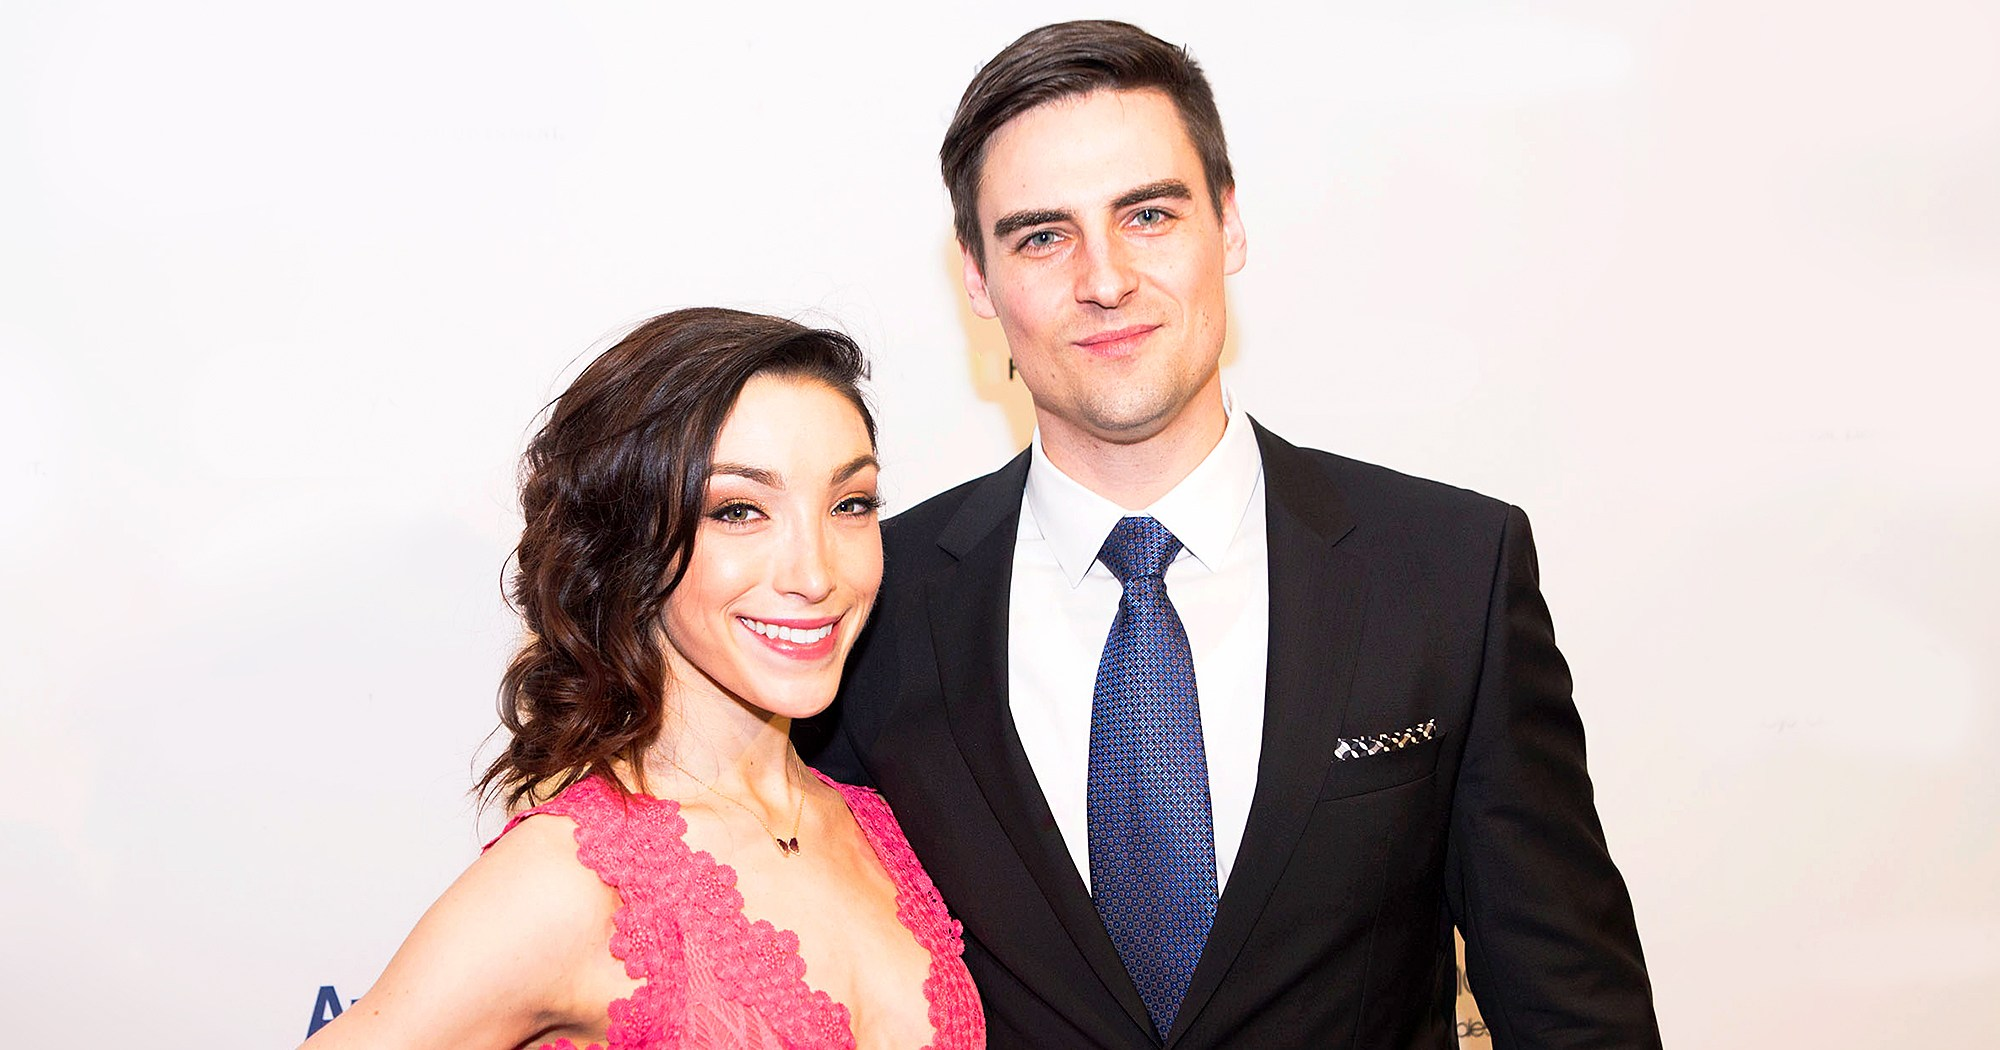 Figure Skaters Meryl Davis And Fedor Andreev Are Engaged: Olympian Meryl Davis Is Engaged To Fedor Andreev: See Her Ring